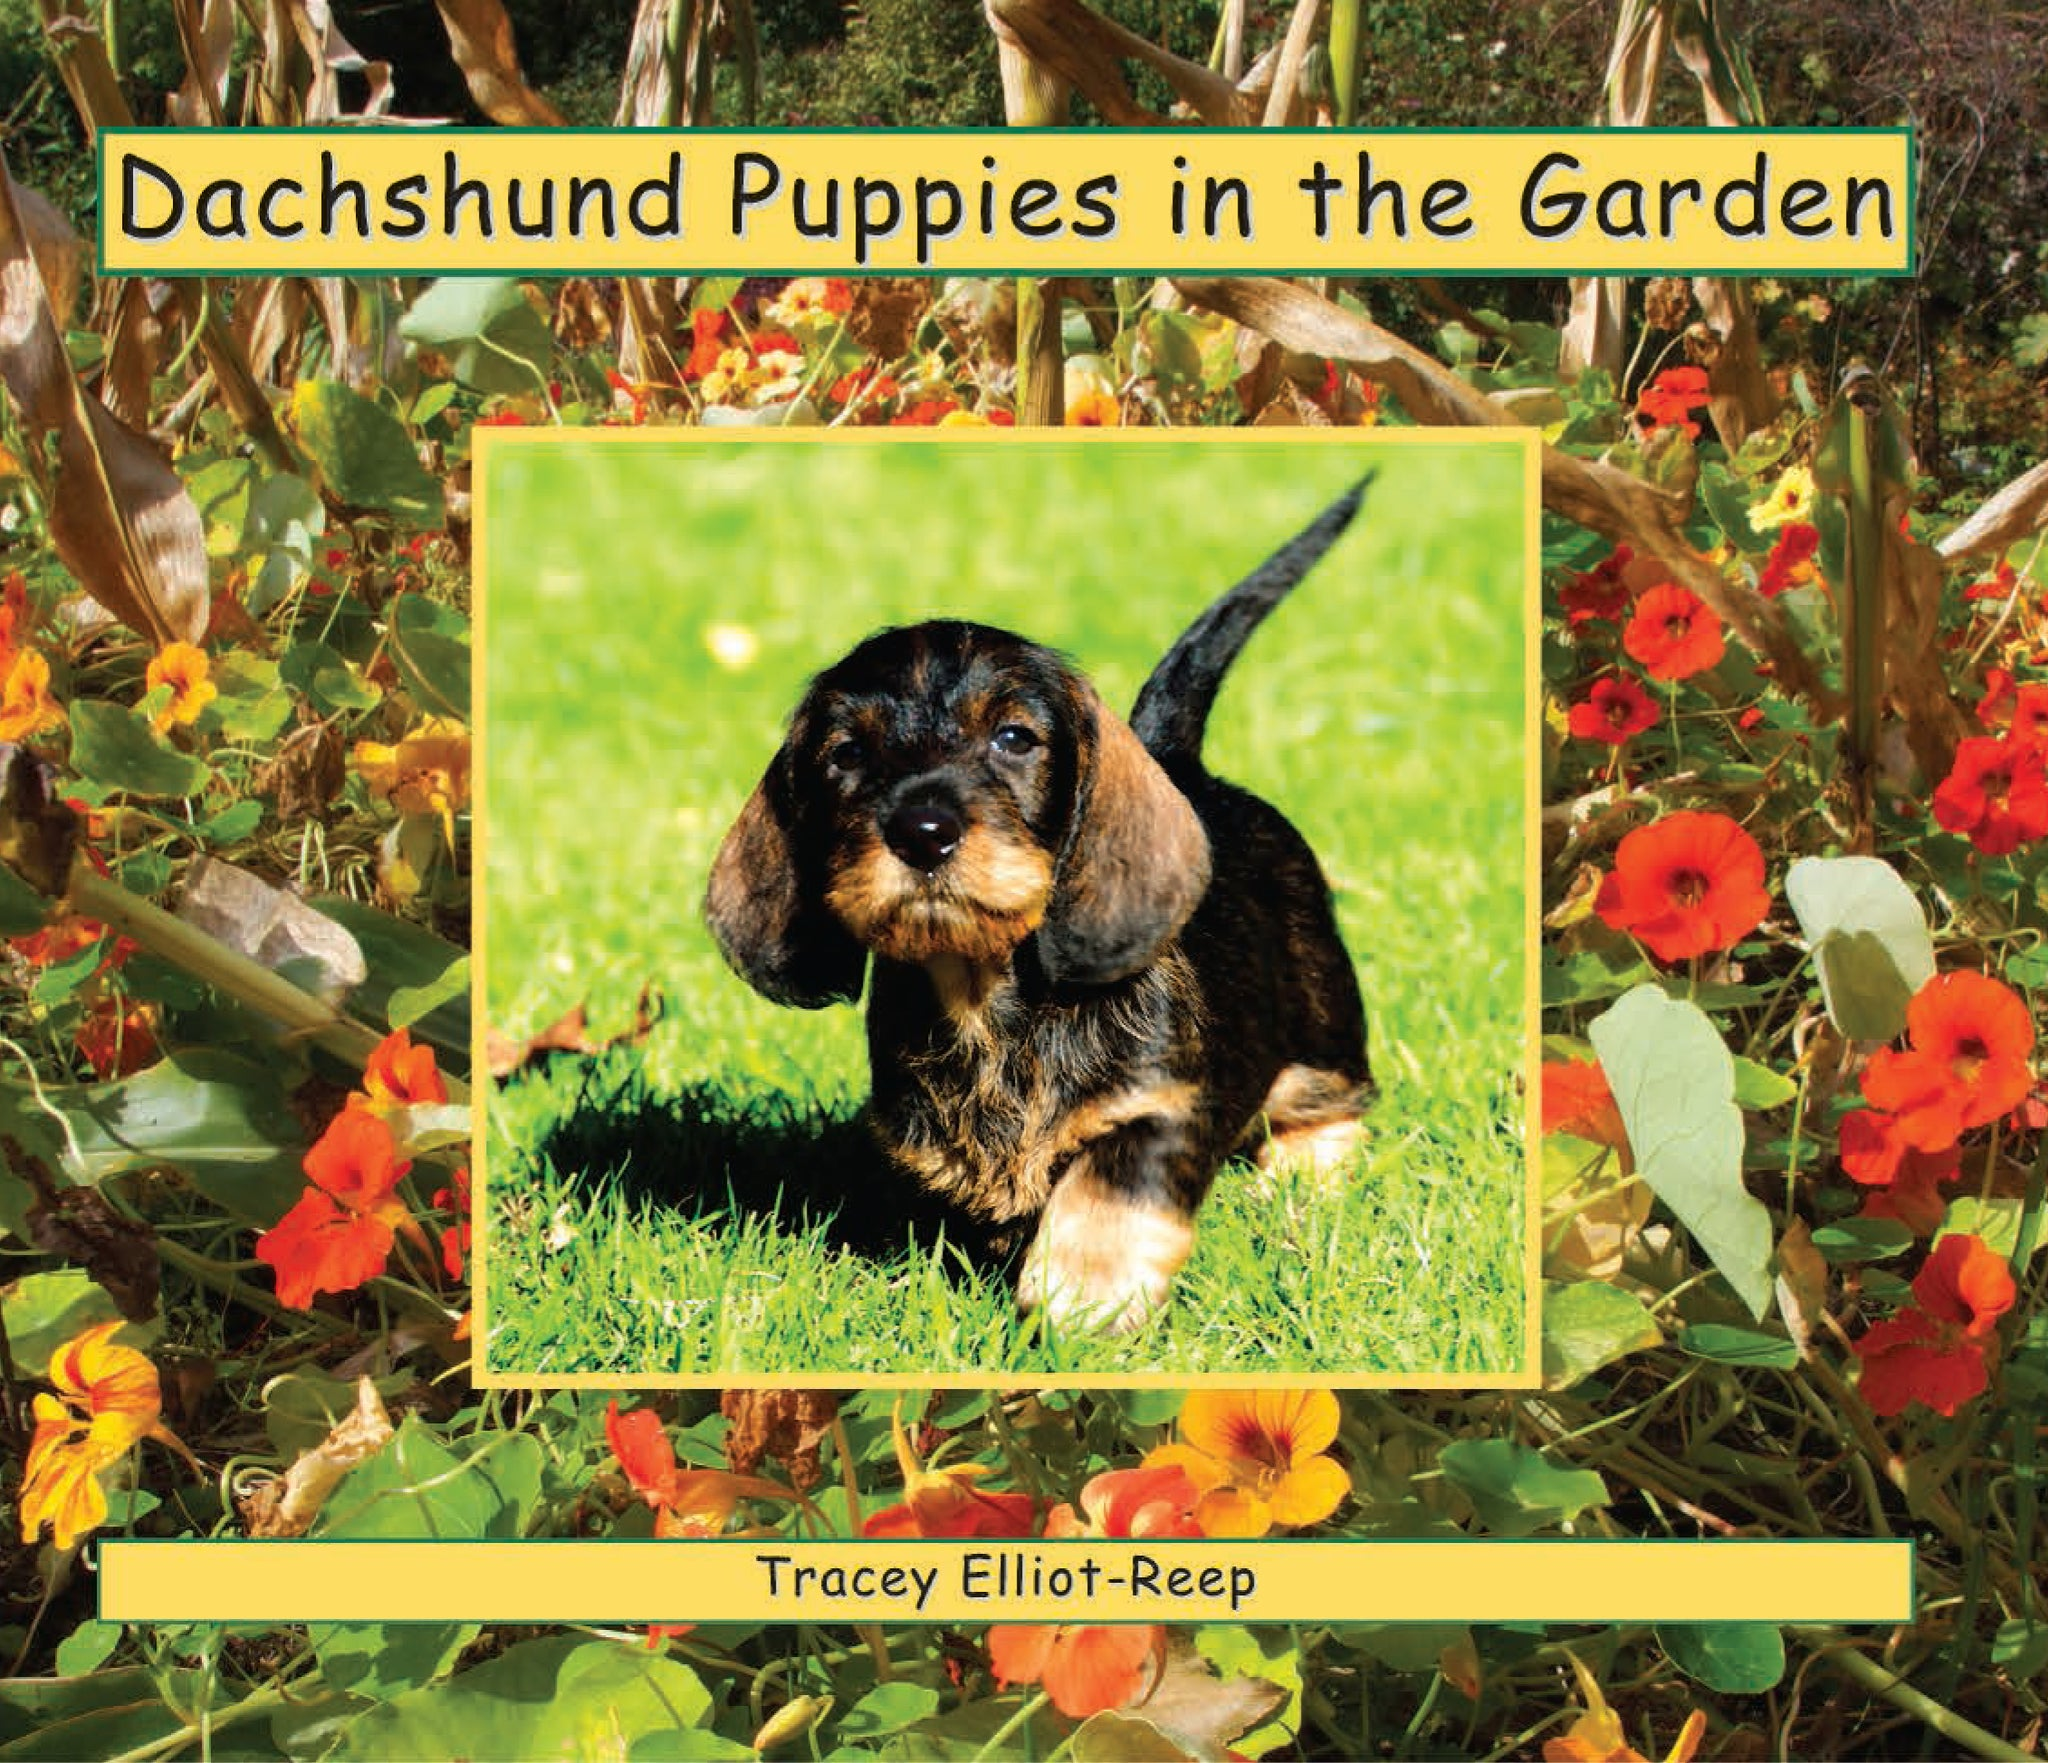 B025 - Dachshunds Puppies in the Garden - Flexi-Cover Book